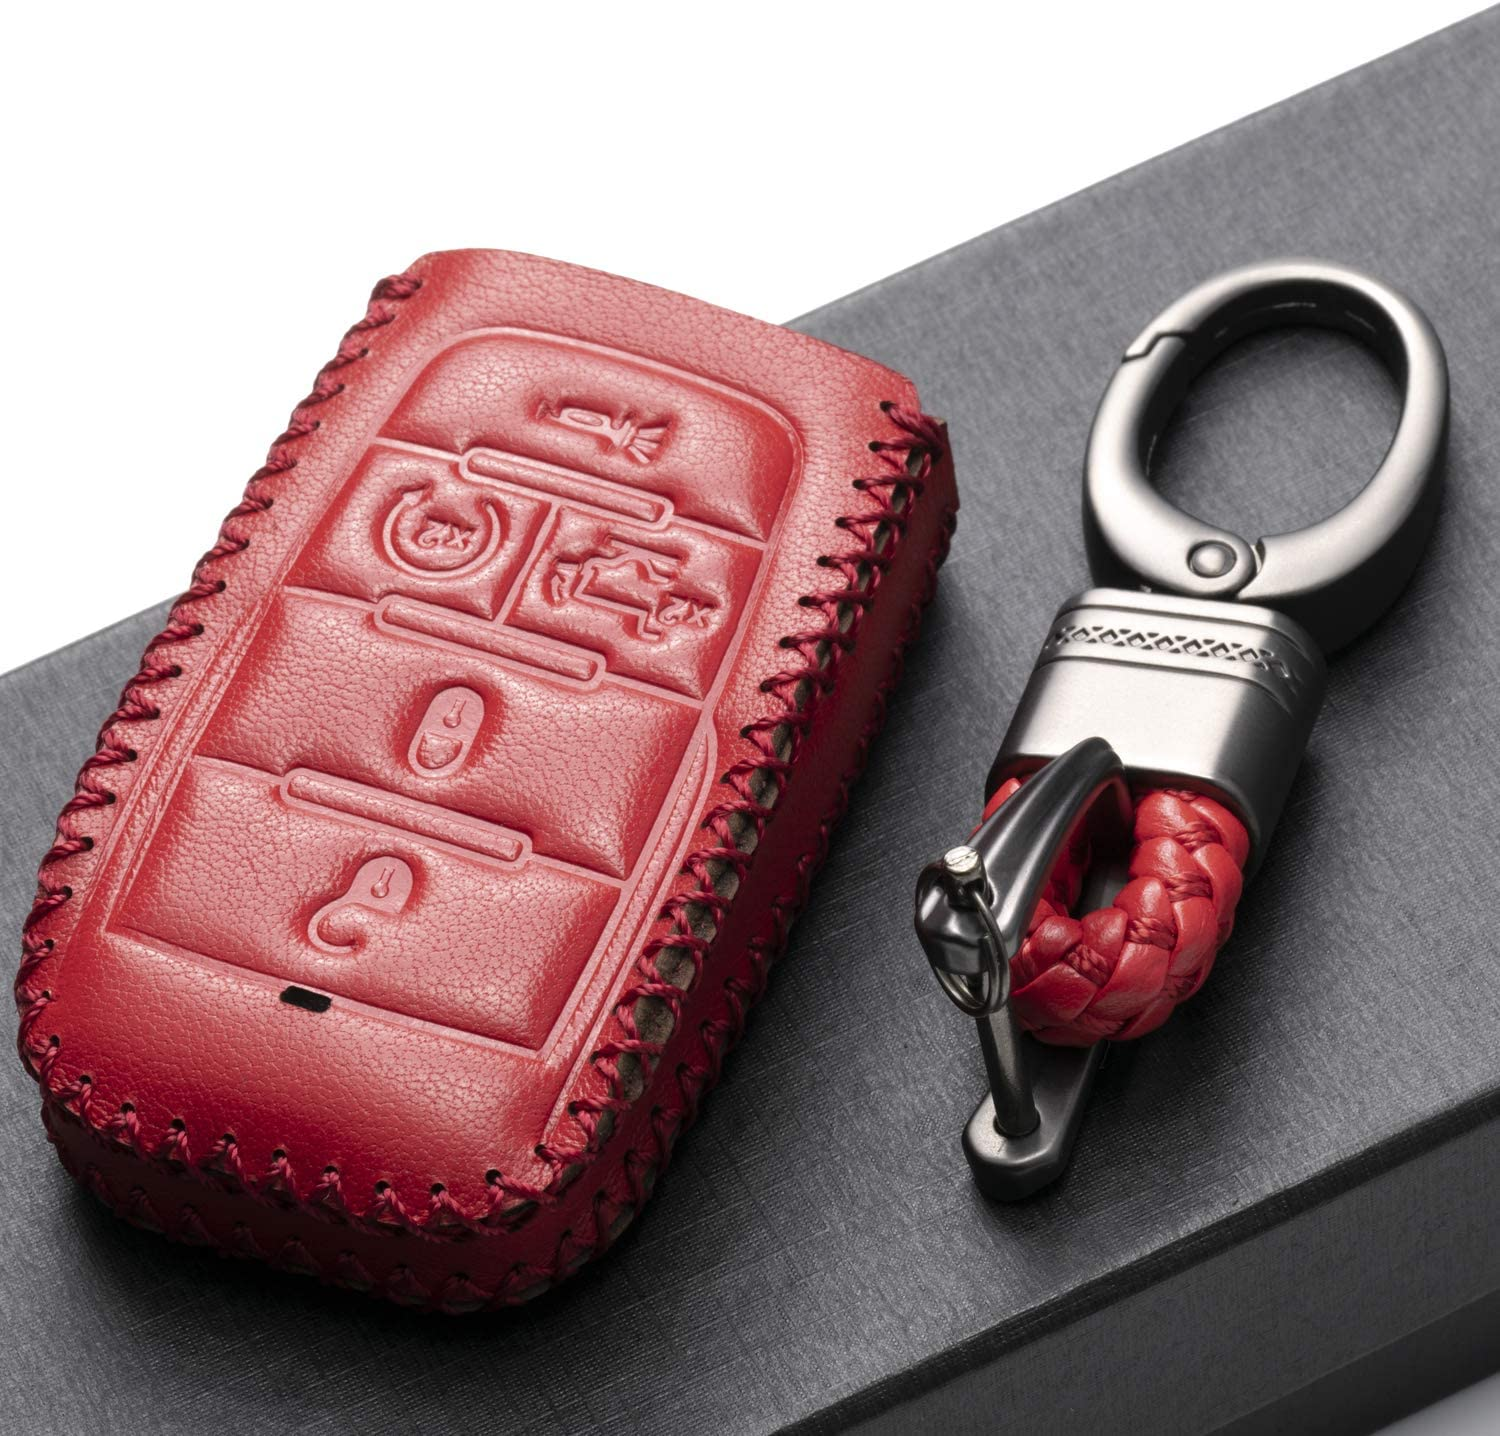 5-Button with Tailgate, Brown Vitodeco Genuine Leather Keyless Entry Remote Control Smart Key Case Cover with Leather Key Chain for 2019-2020 RAM 1500